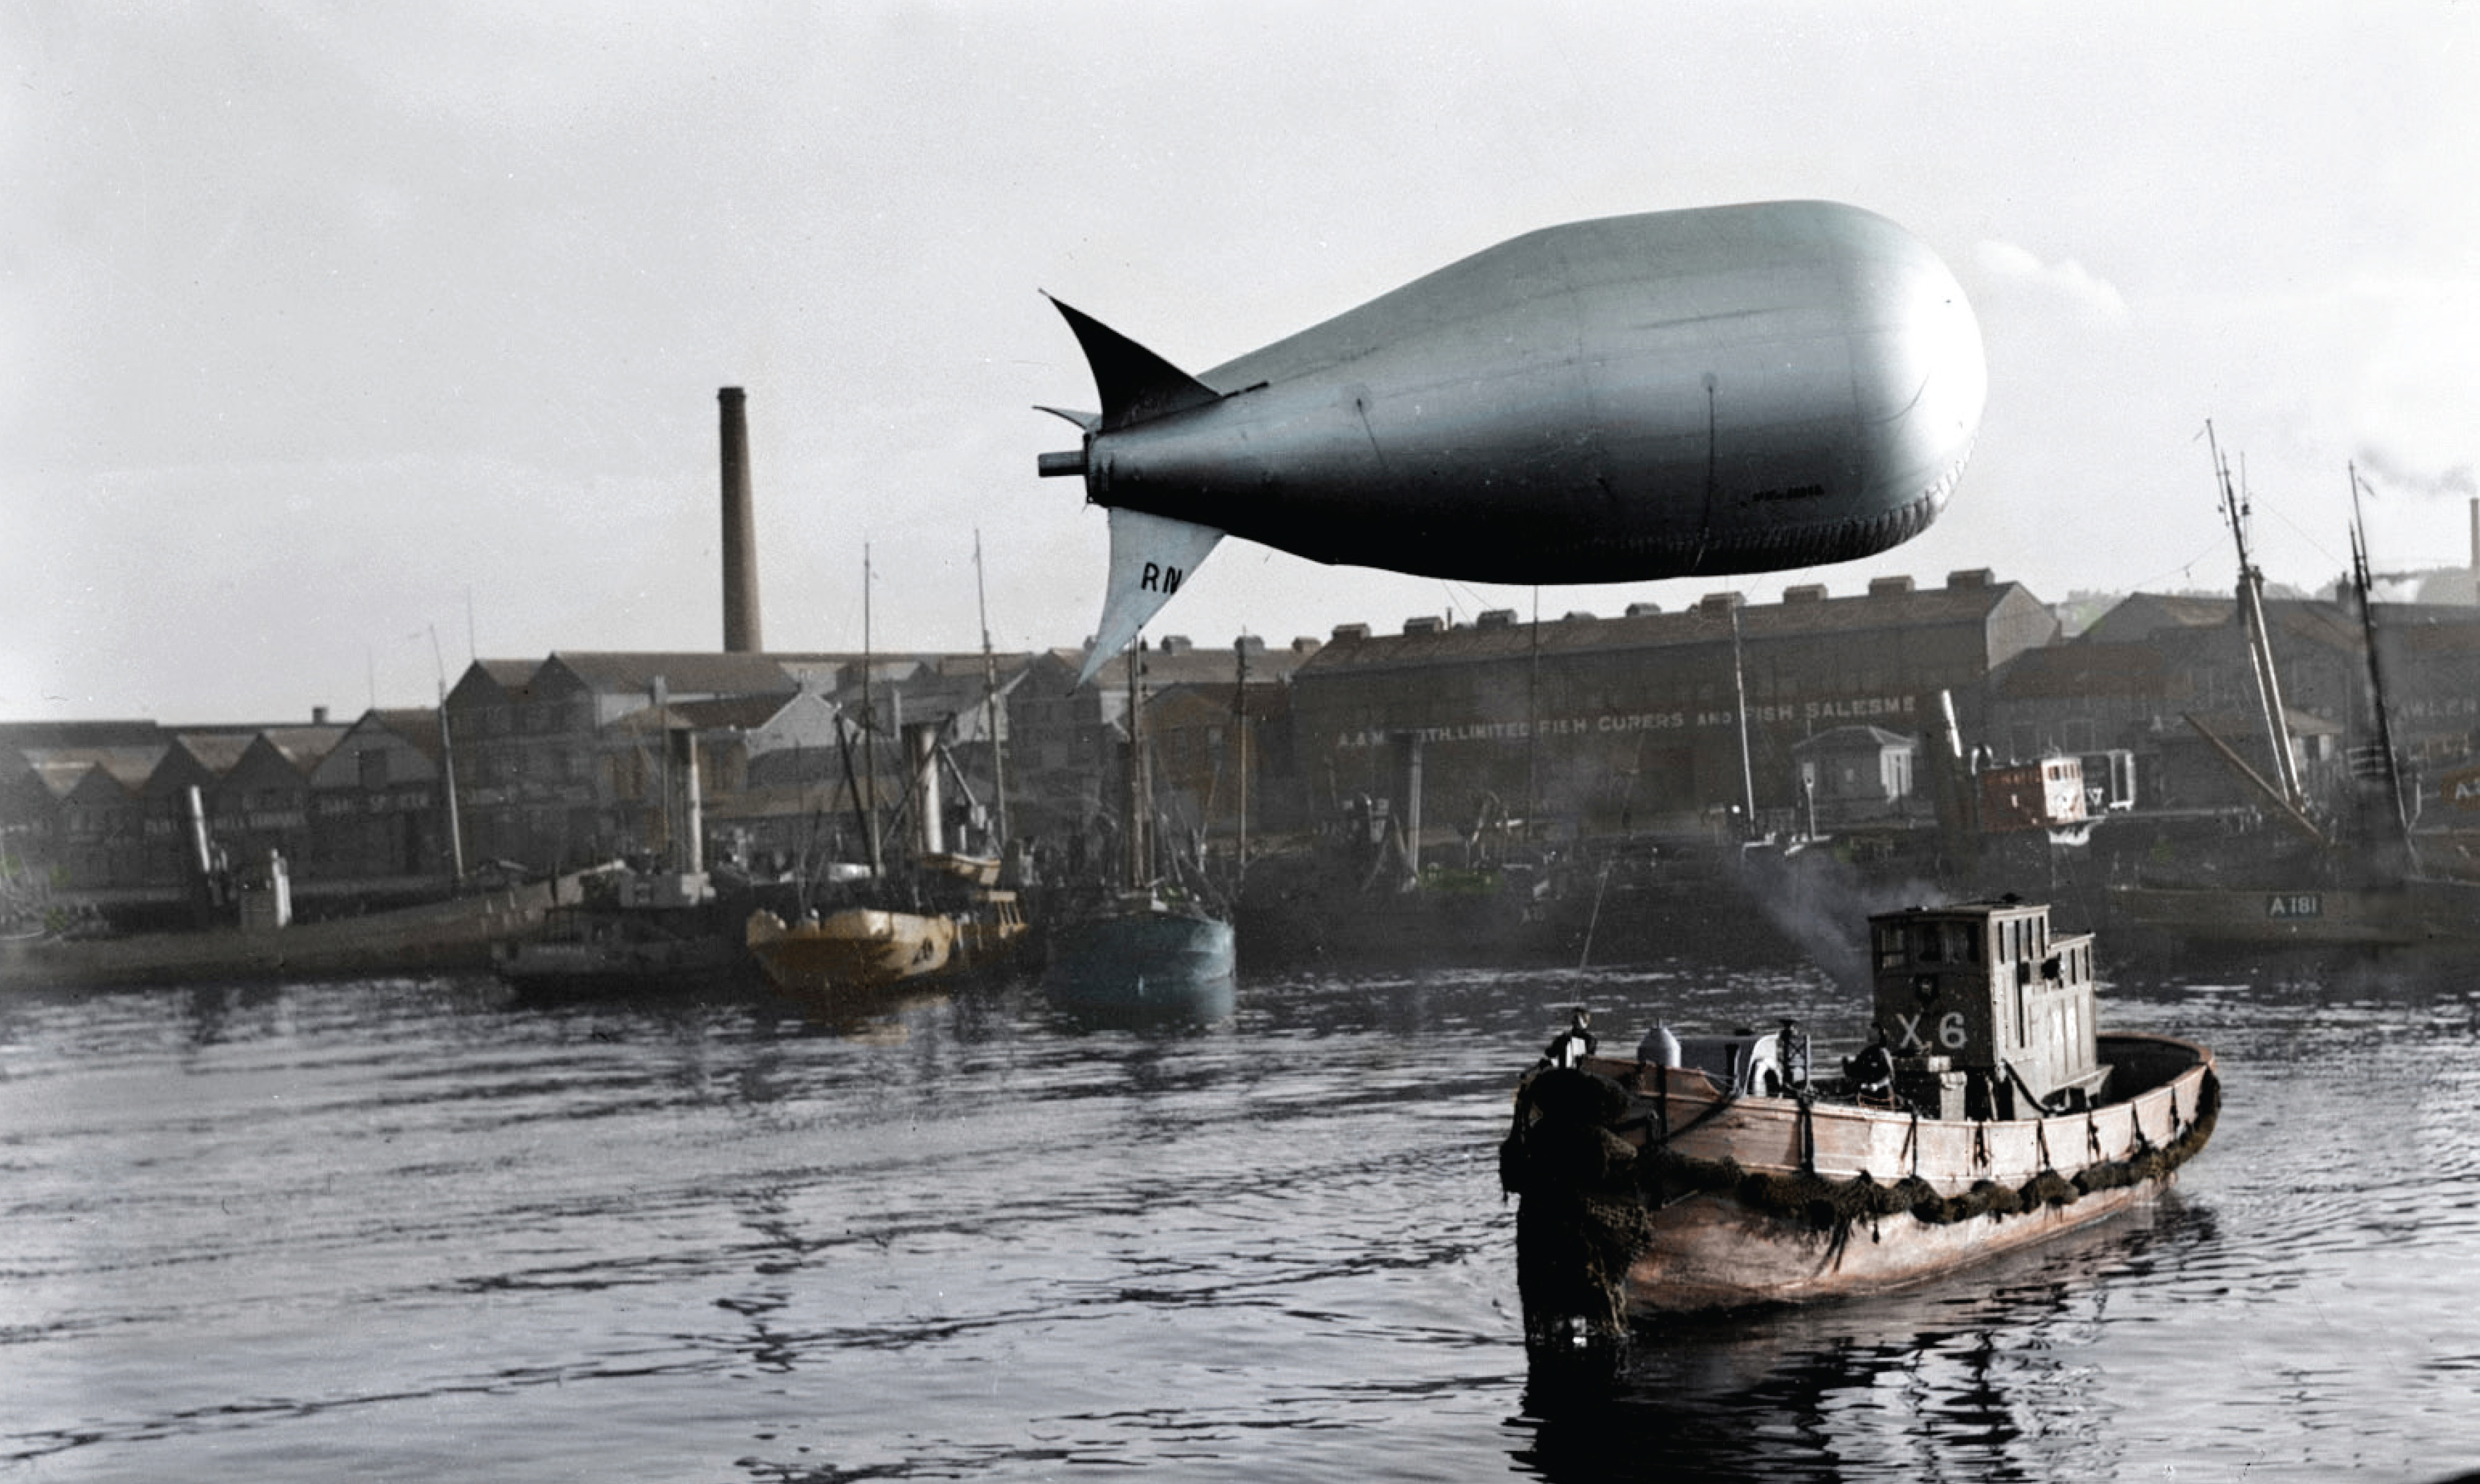 A Royal Naval airship trails along after a fishing boat in this industrial view of the Harbour as a deckhand watches on in this amazing photo.